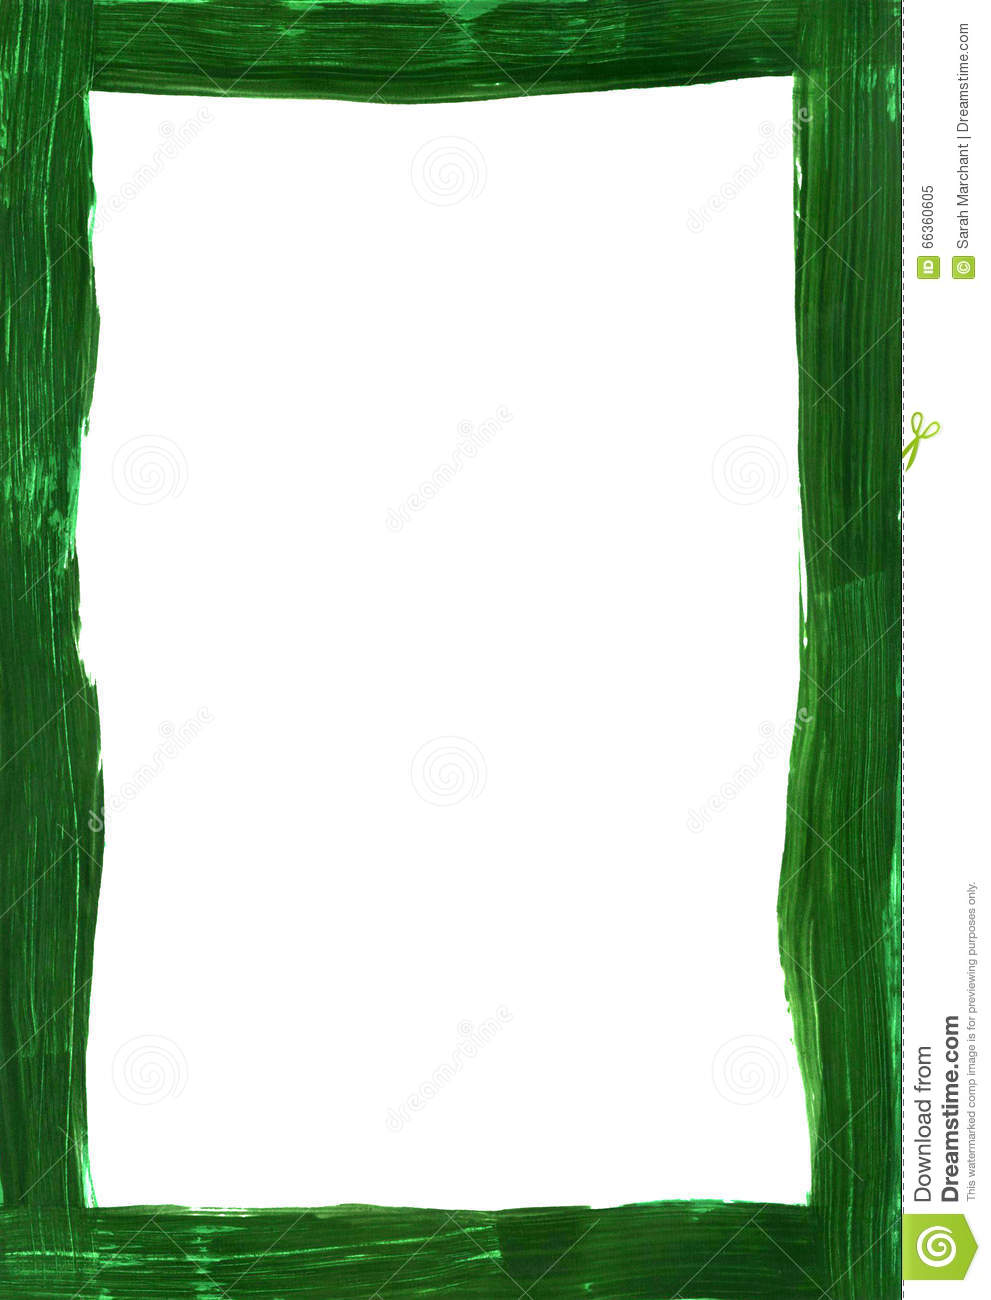 Dark Green Painted Narrow Frame On White Stock Photo